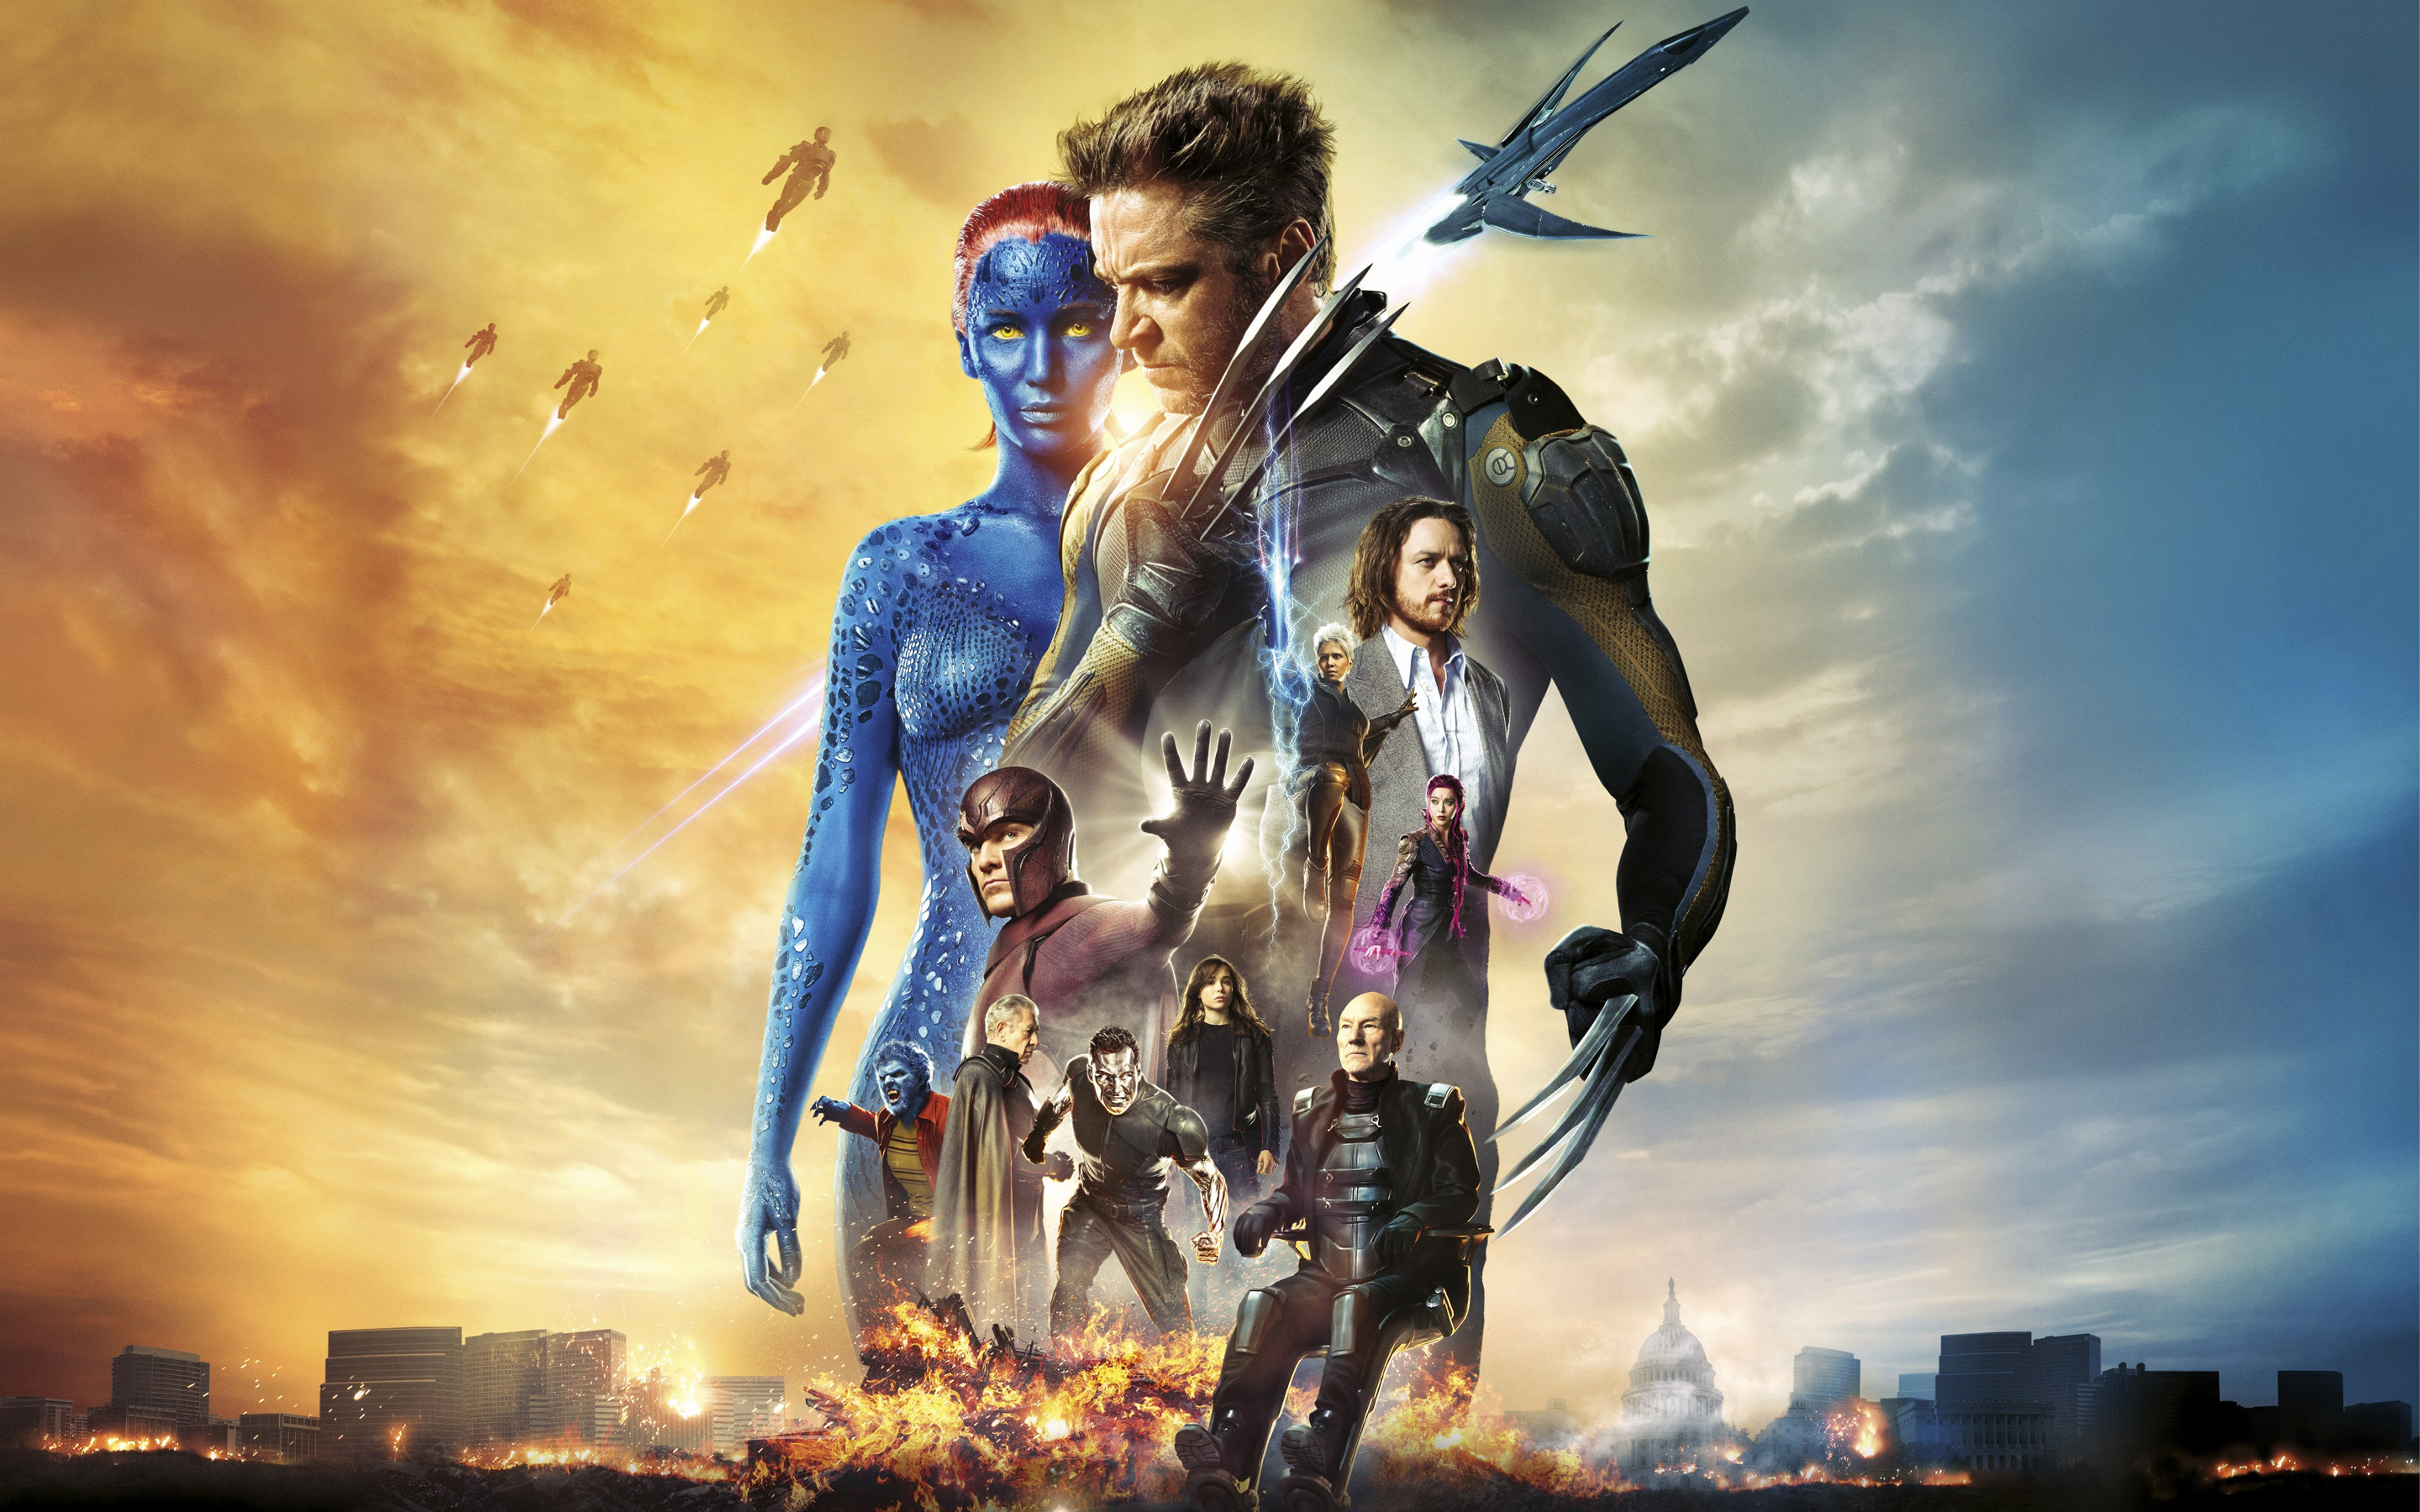 X Men Days of Future Past Movie wallpaper